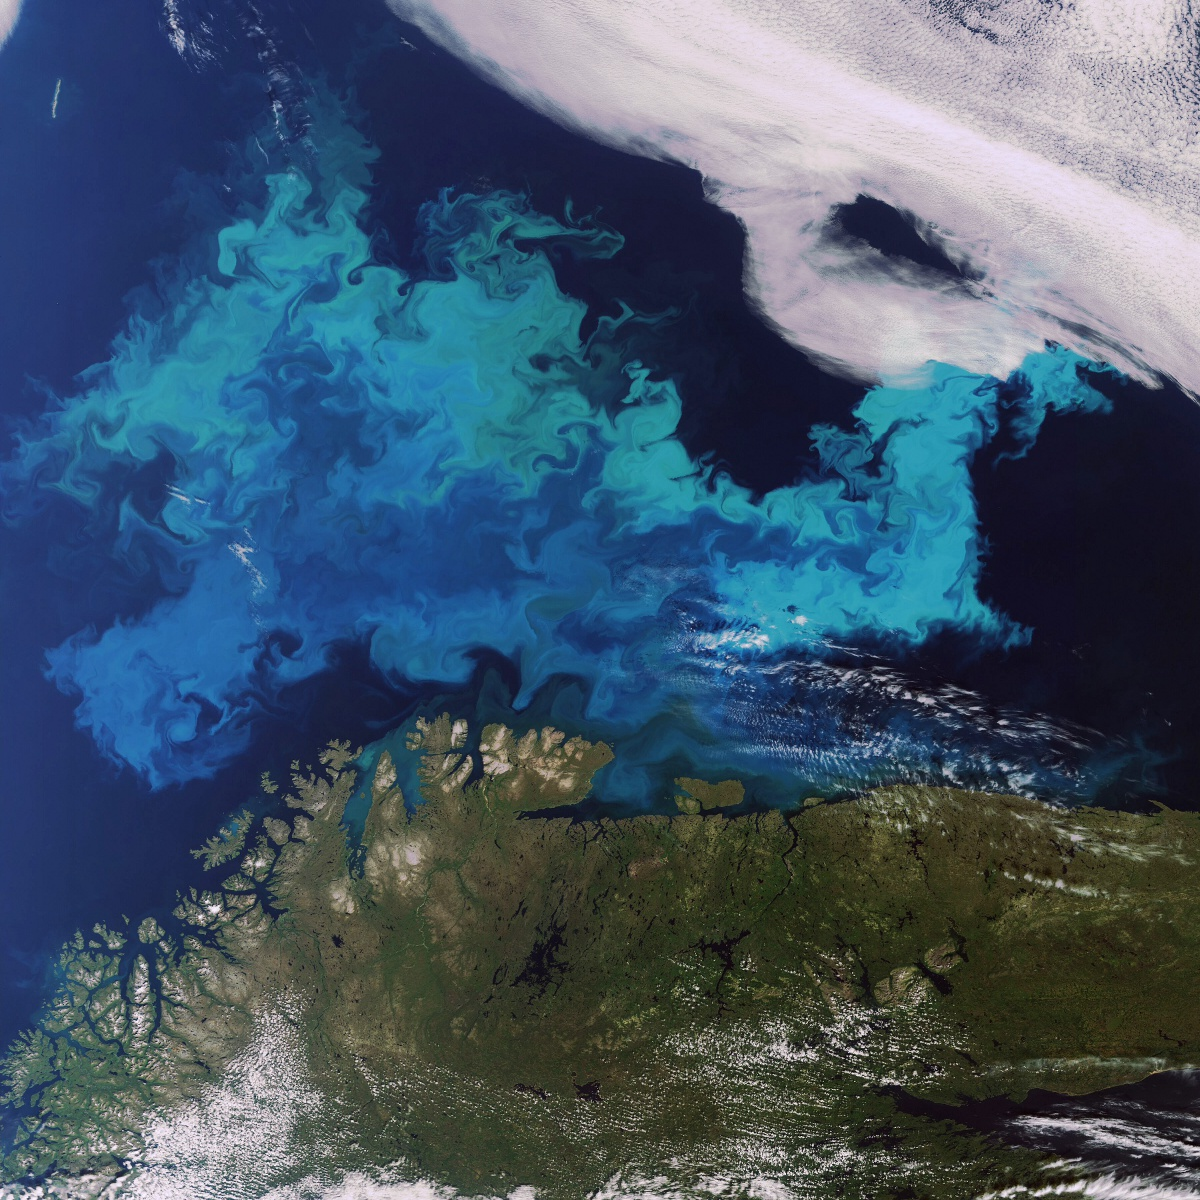 Envisat - MERIS - Algal bloom - Cap nord - ESA - Sentinel 2 - Copernicus - Coastal management - côtier